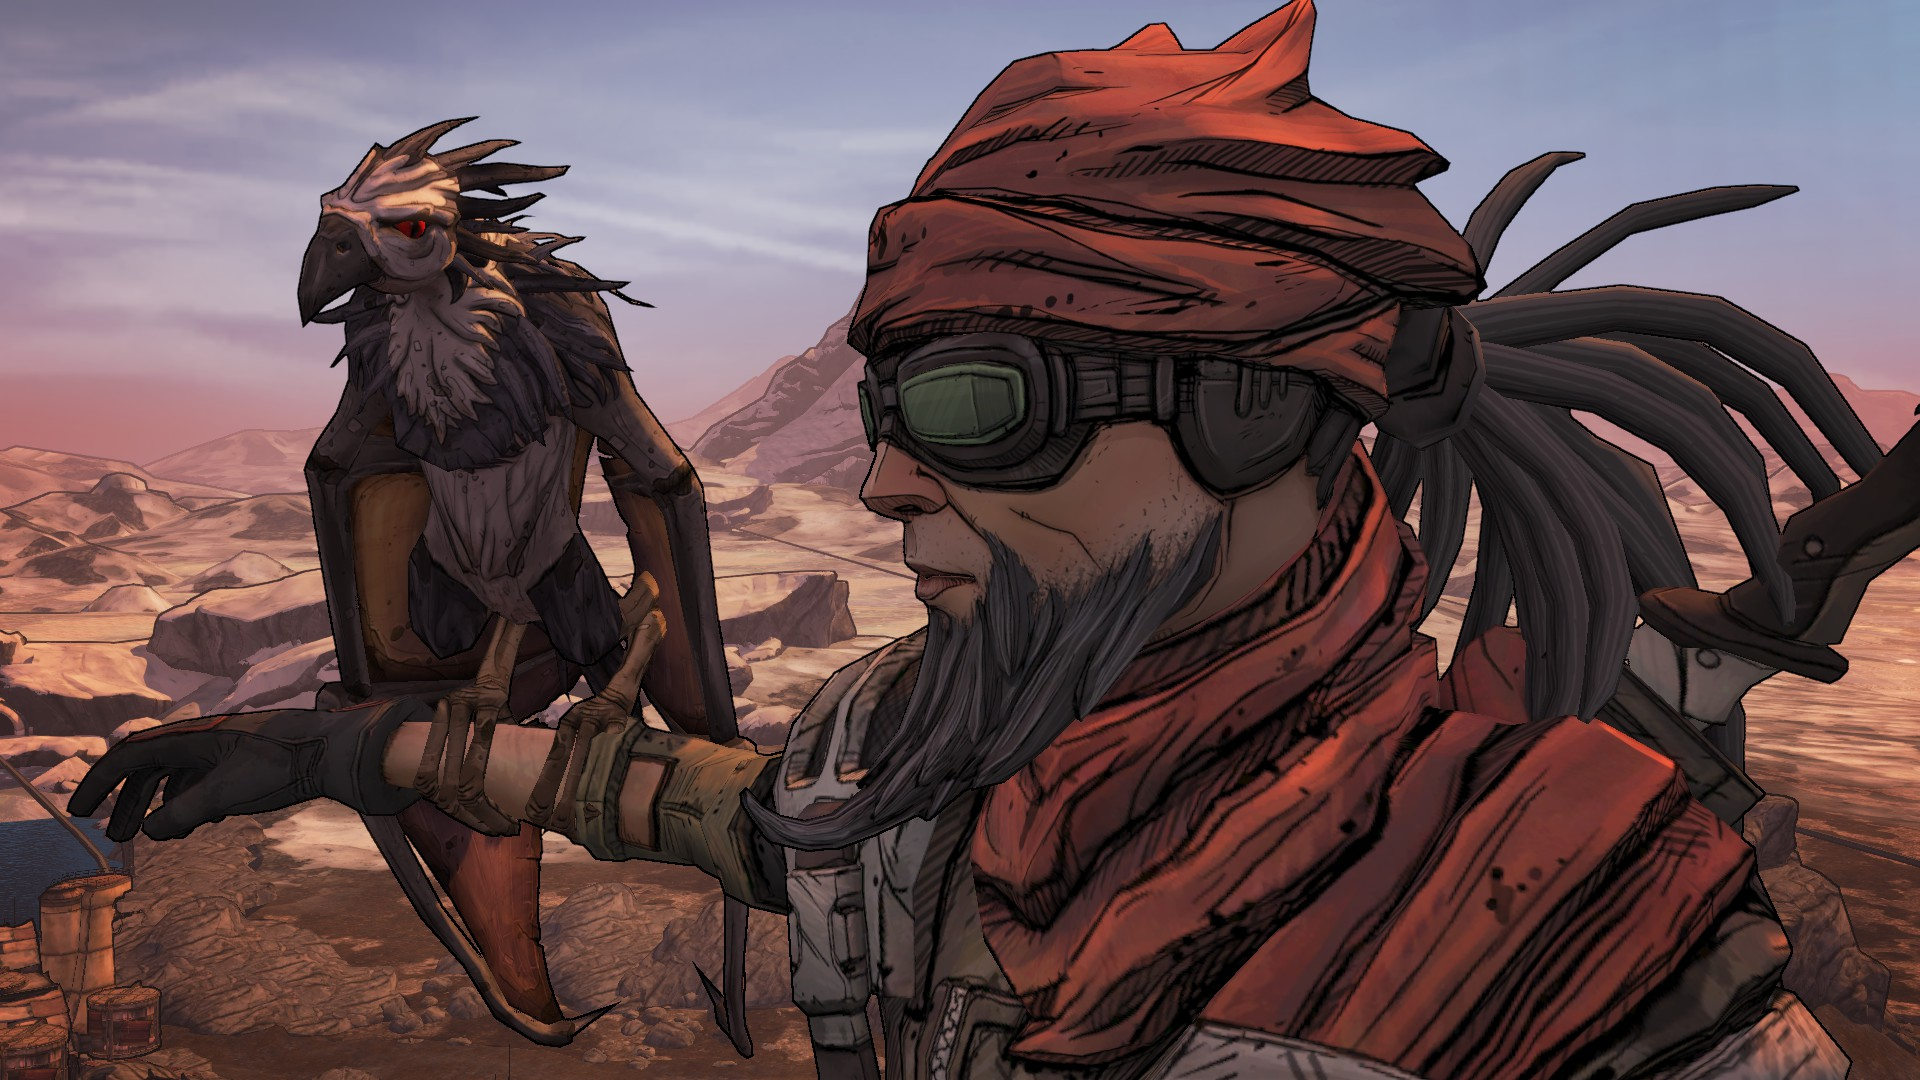 Borderlands 2 images Borderlands Wallpaper HD wallpaper ... Borderlands 2